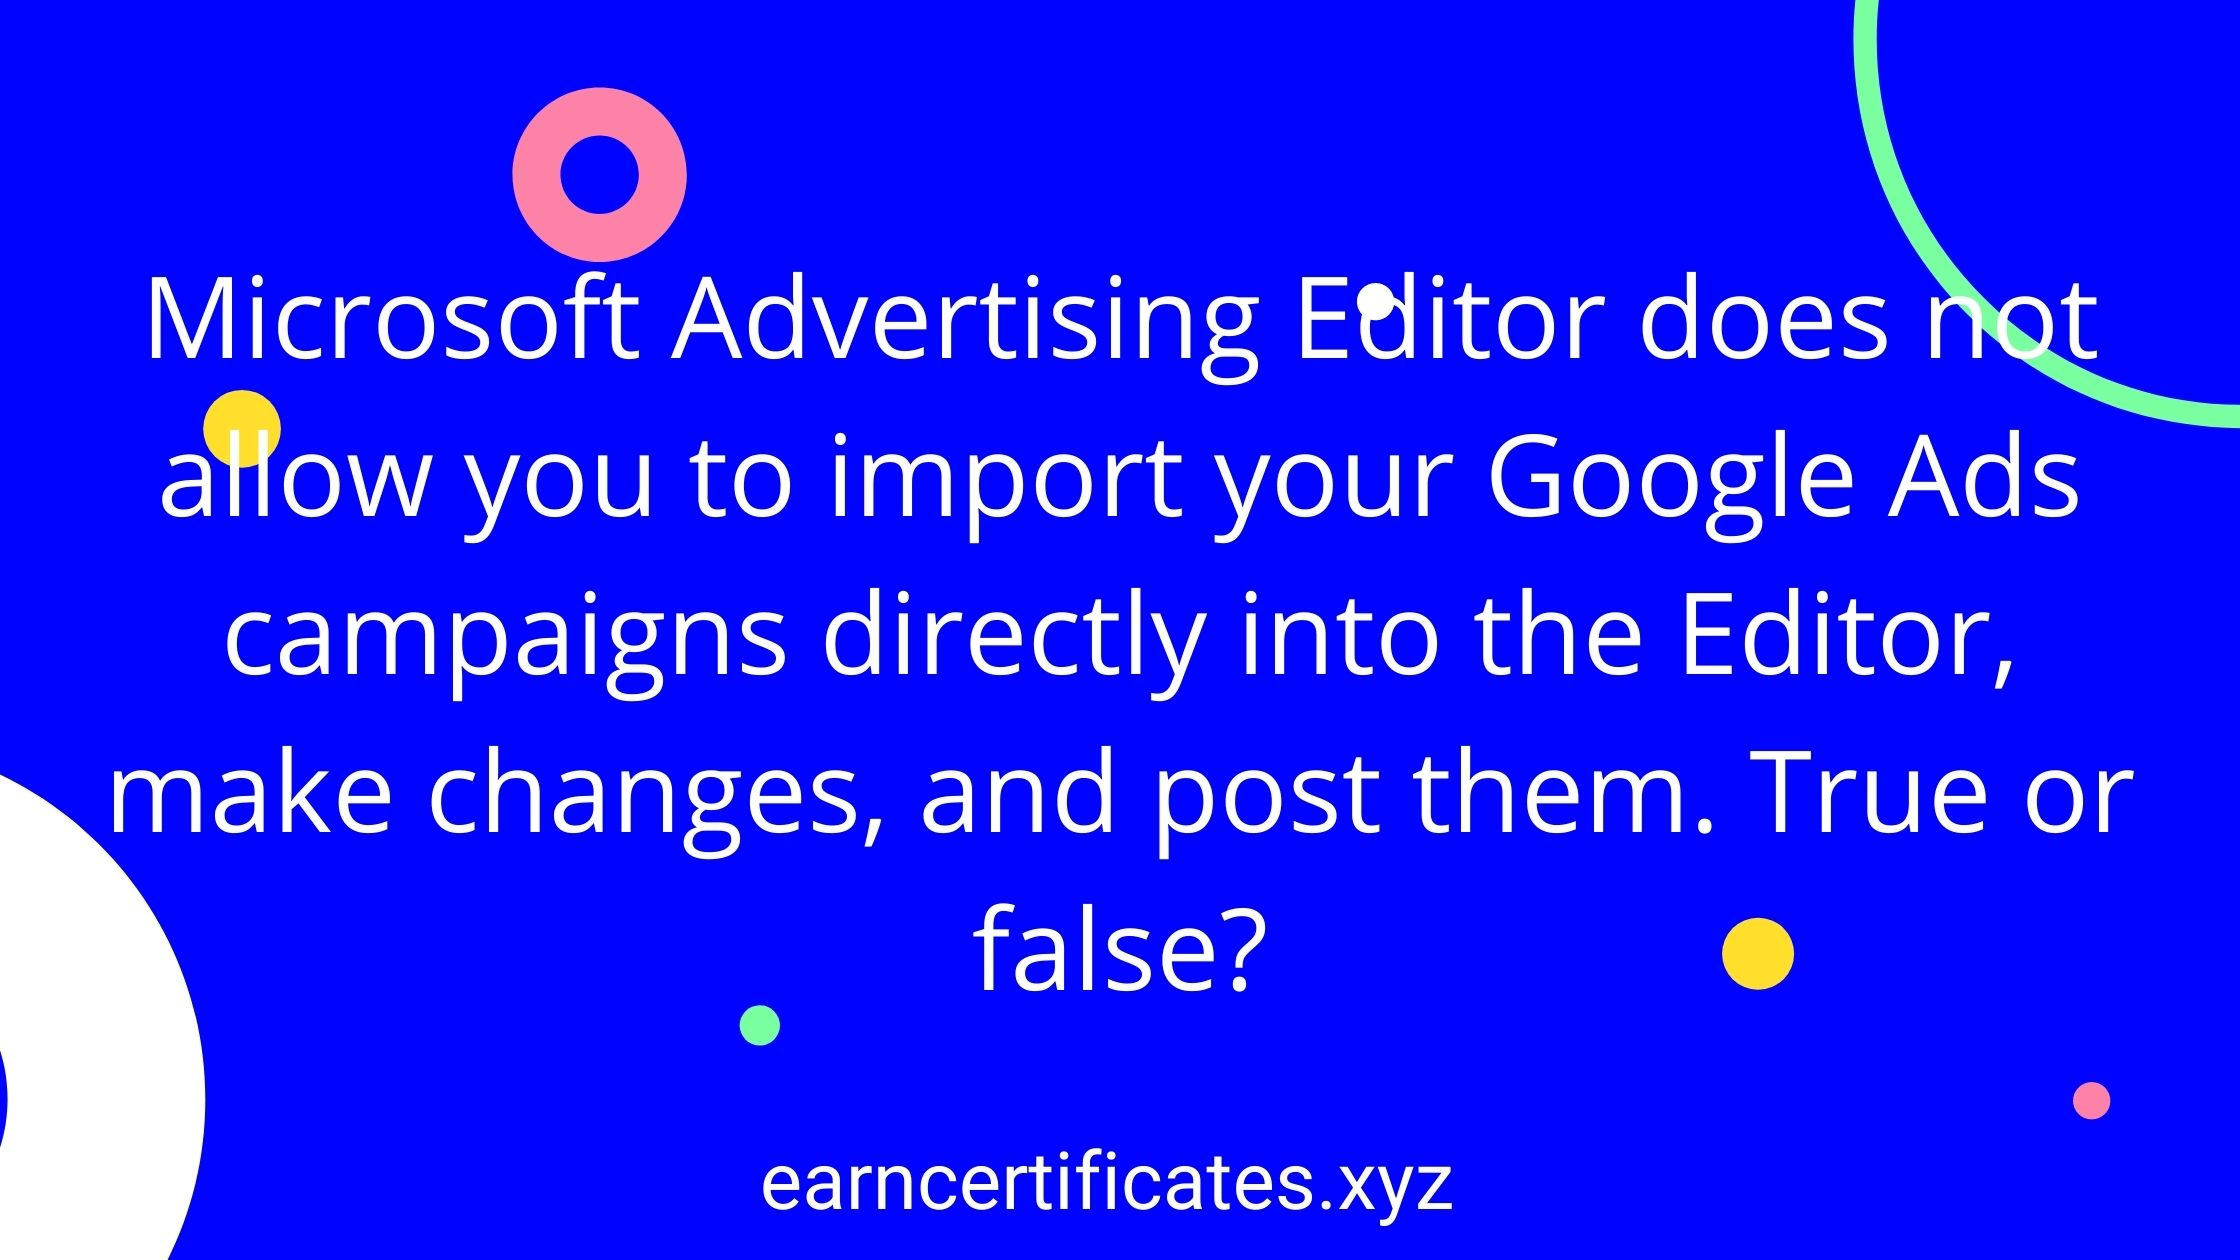 Microsoft Advertising Editor does not allow you to import your Google Ads campaigns directly into the Editor, make changes, and post them. True or false?